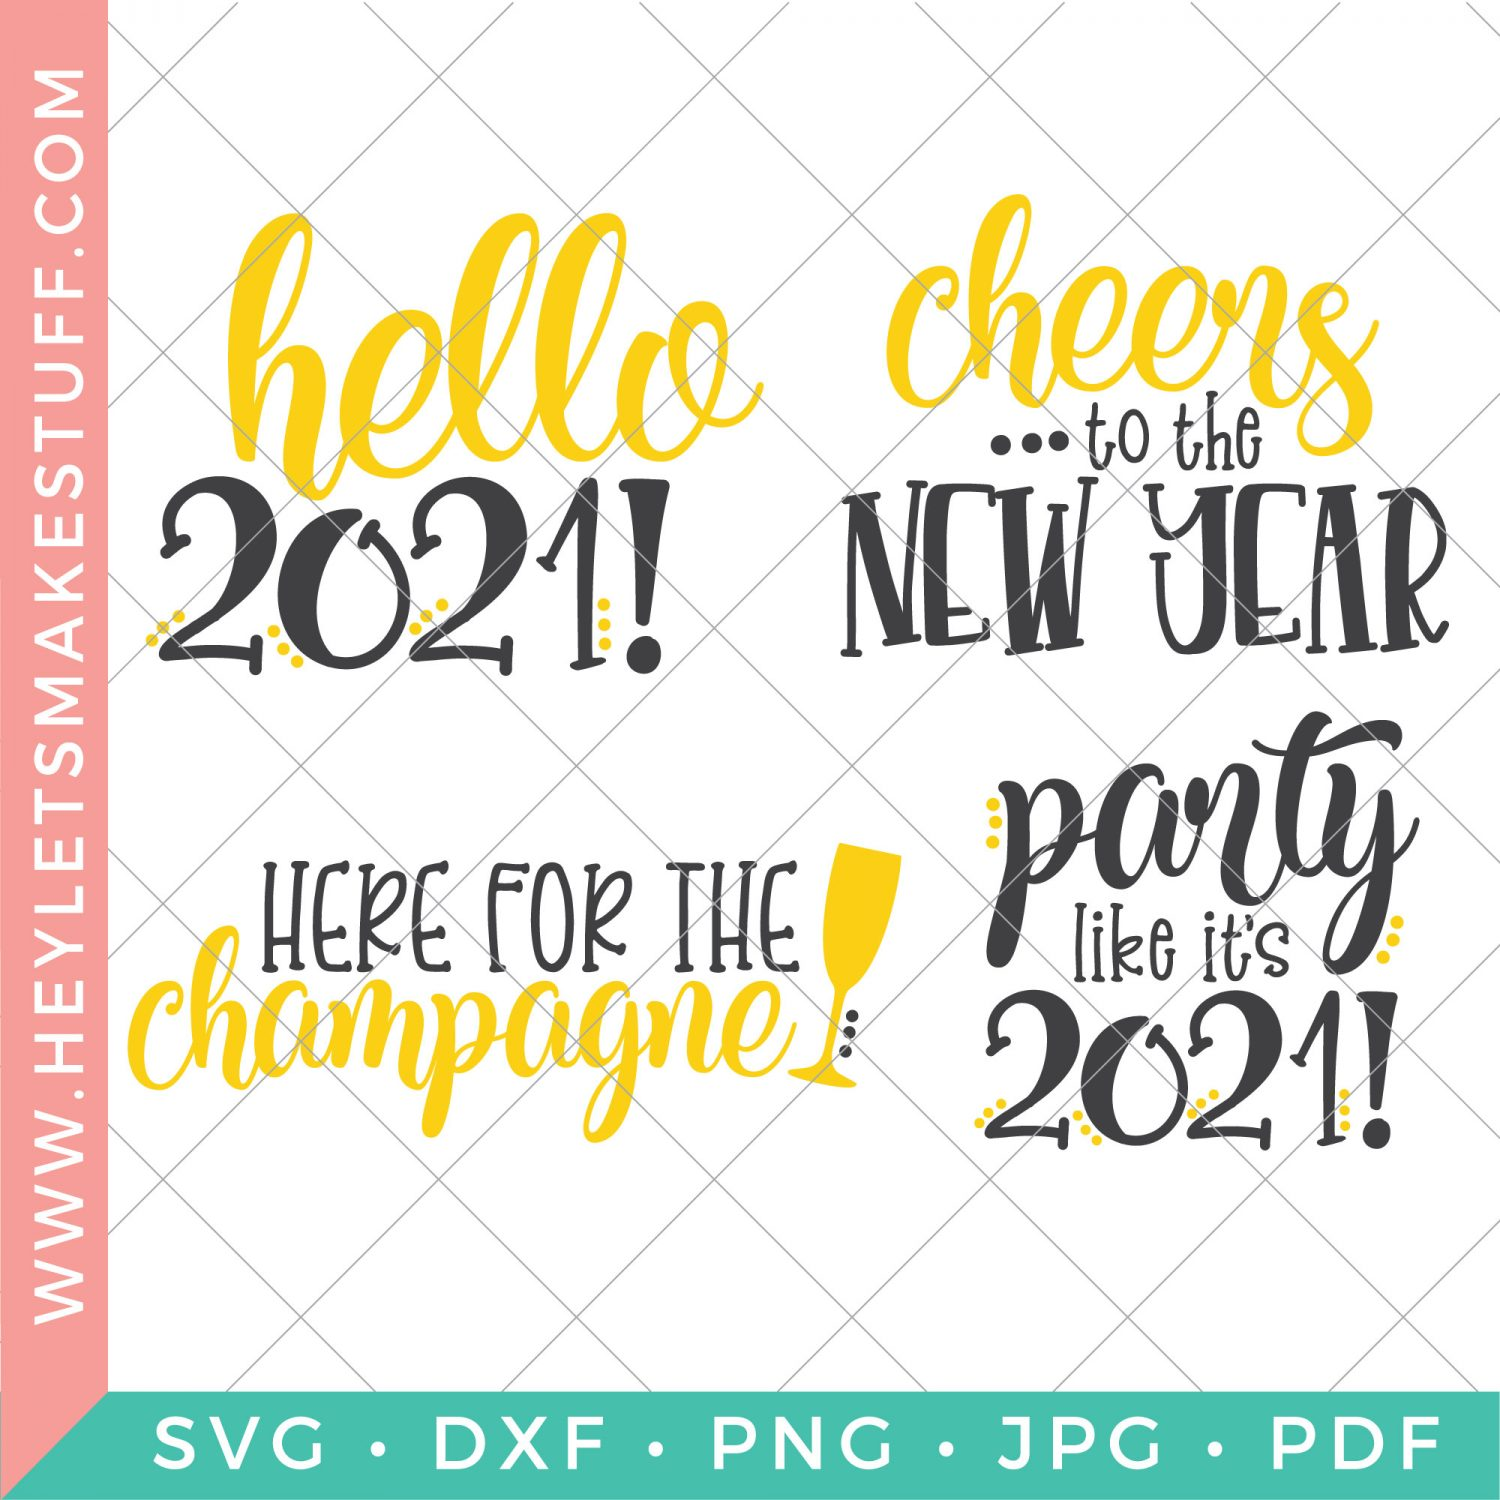 SVG files for New Year's Eve